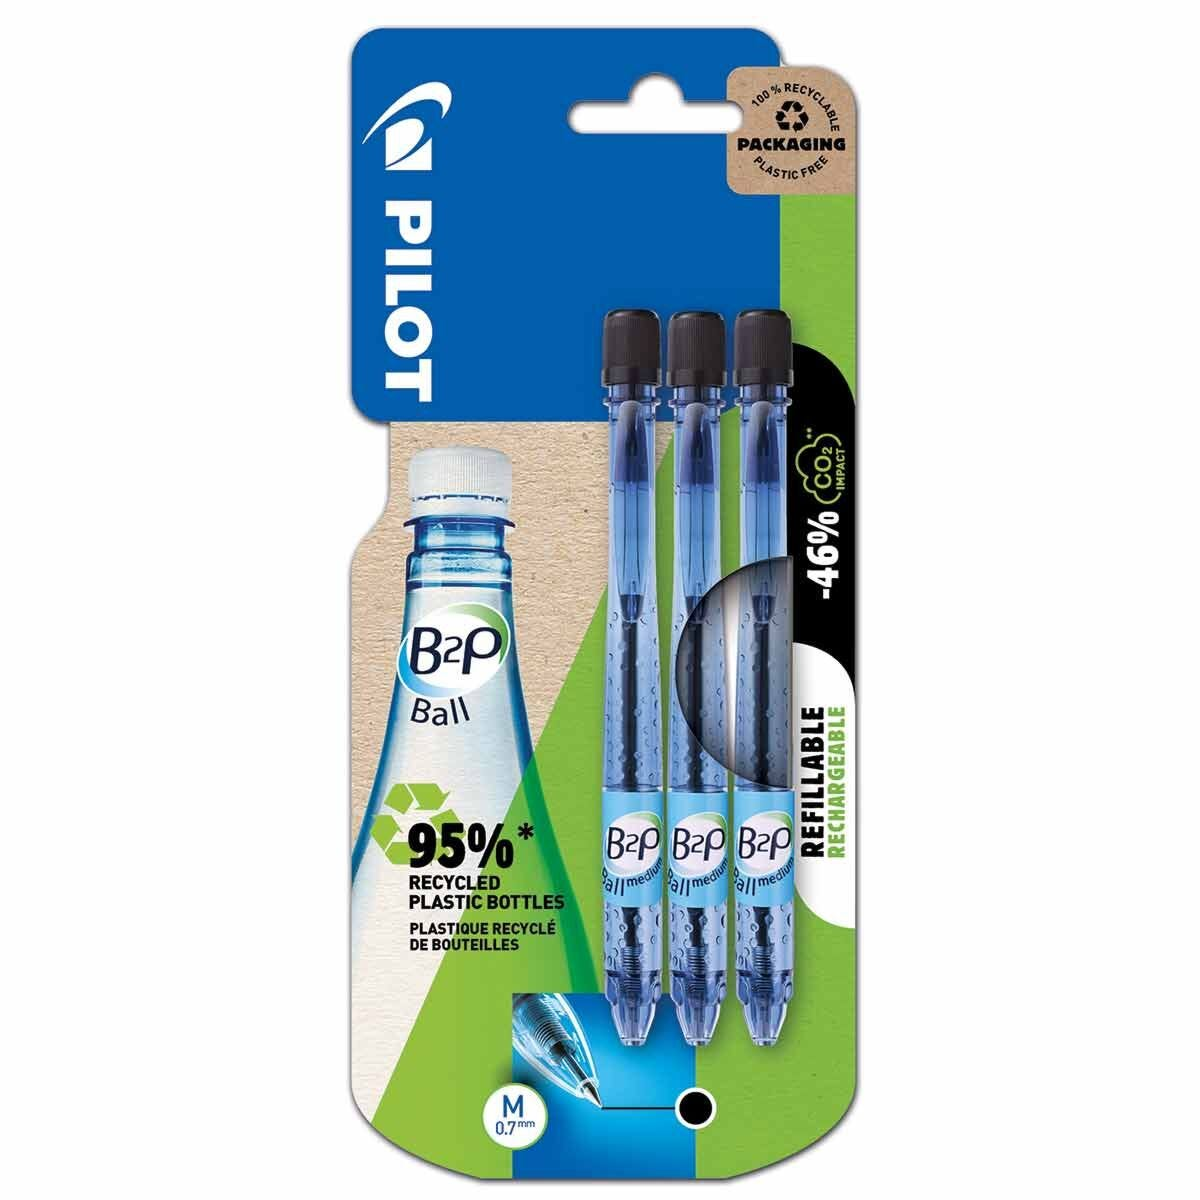 Pilot B2P Recycled Ballpoint Pens Pack of 3